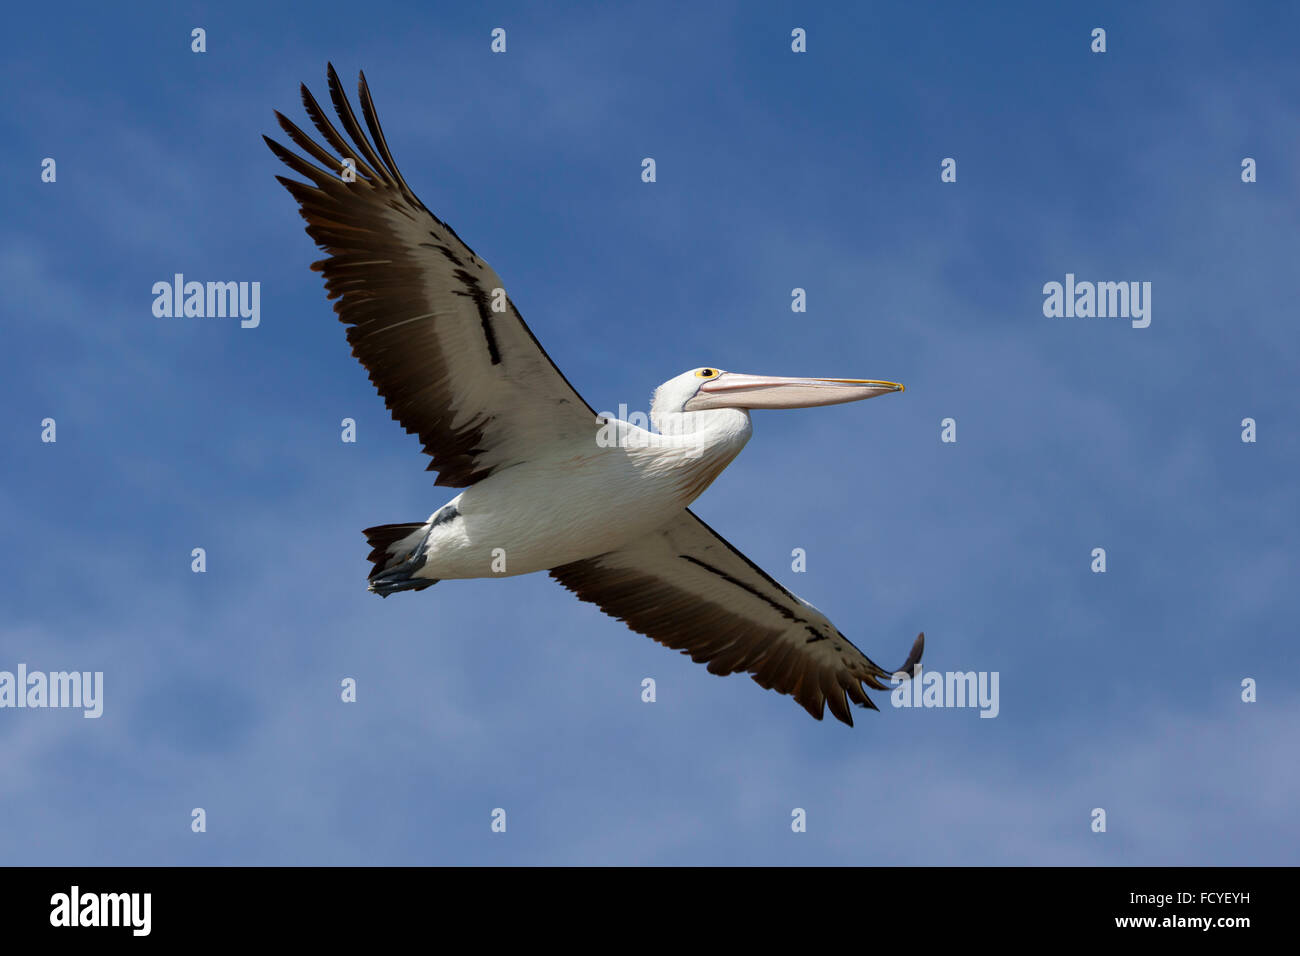 Flying pelican in the blue sky, victoria, Australia - Stock Image